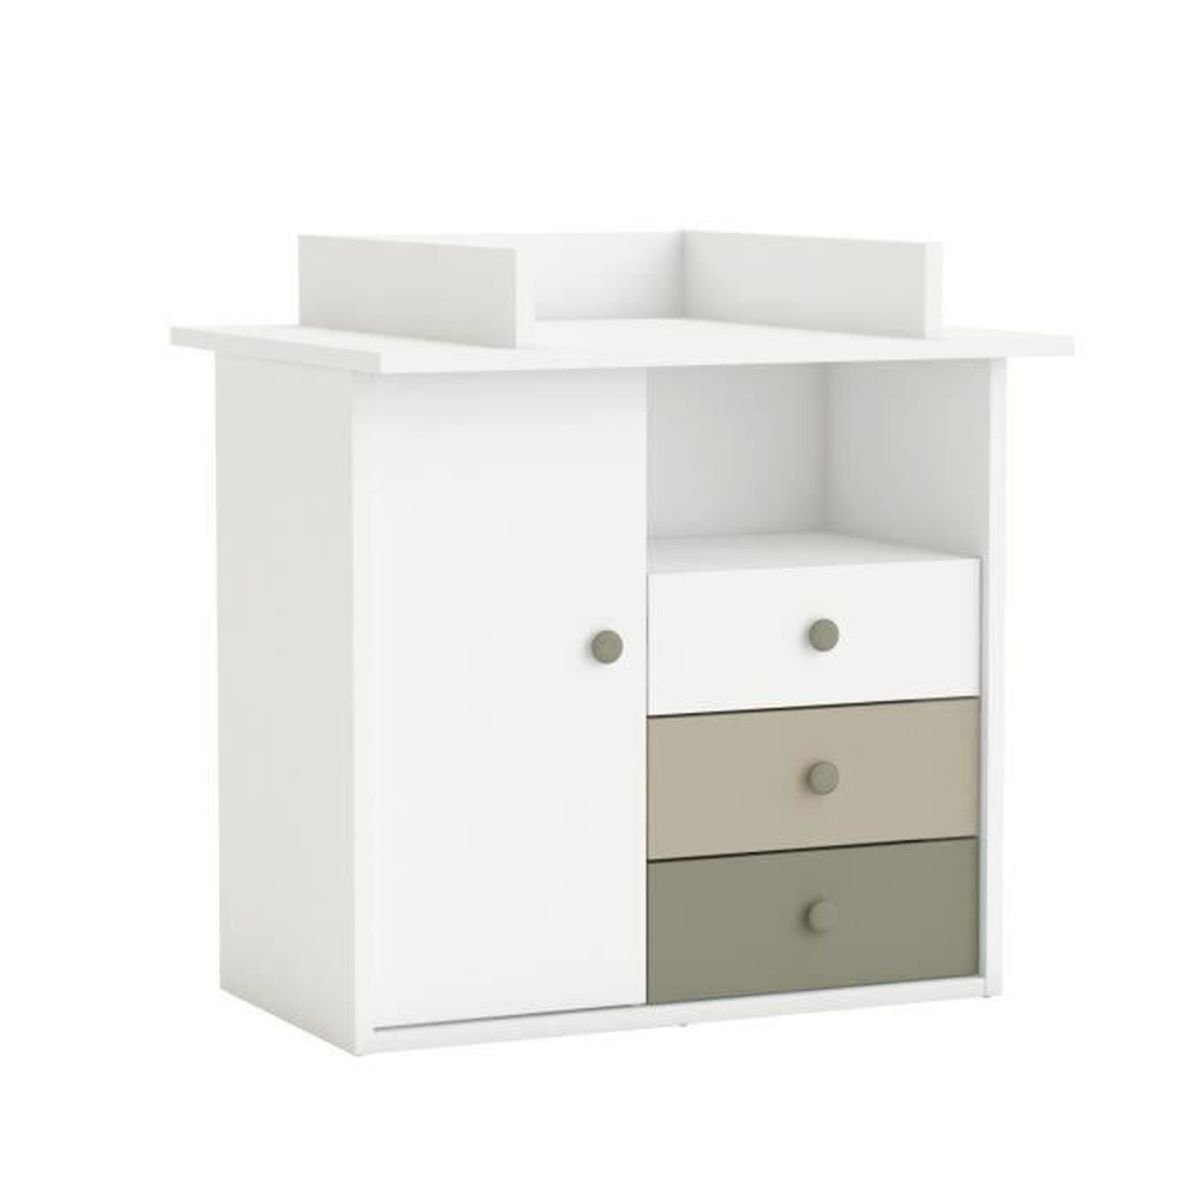 commode dream langer 1 portes 3 tiroirs 1 niche en. Black Bedroom Furniture Sets. Home Design Ideas